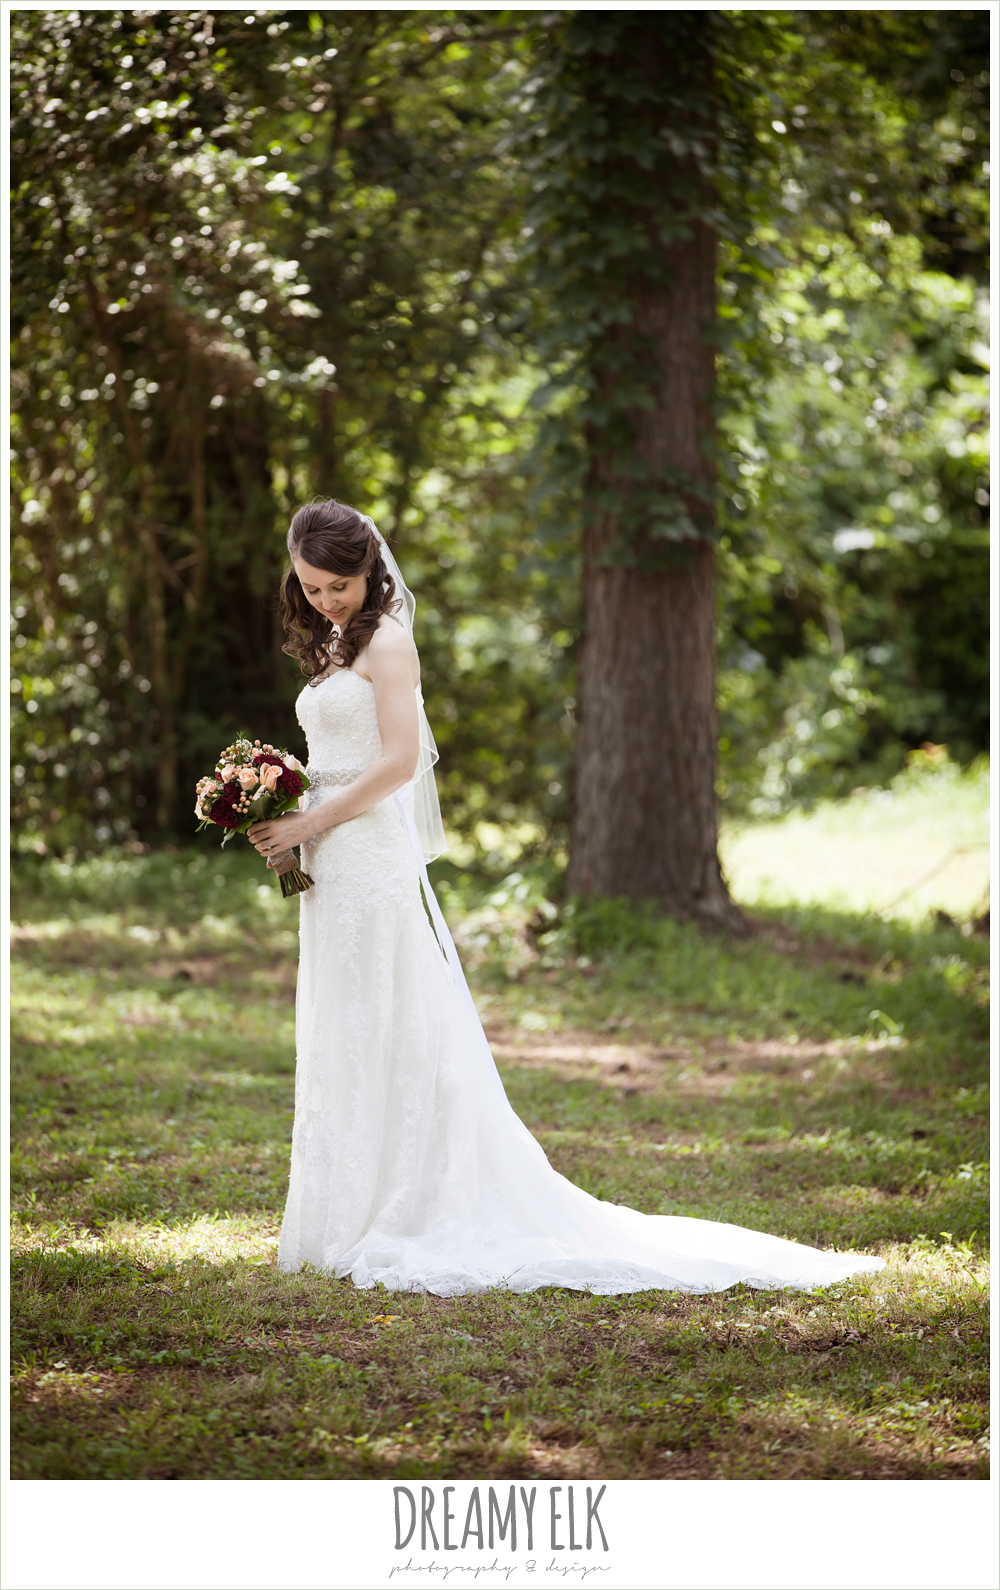 strapless lace wedding dress with rhinestone belt, pine lake ranch, photo {dreamy elk photography and design}